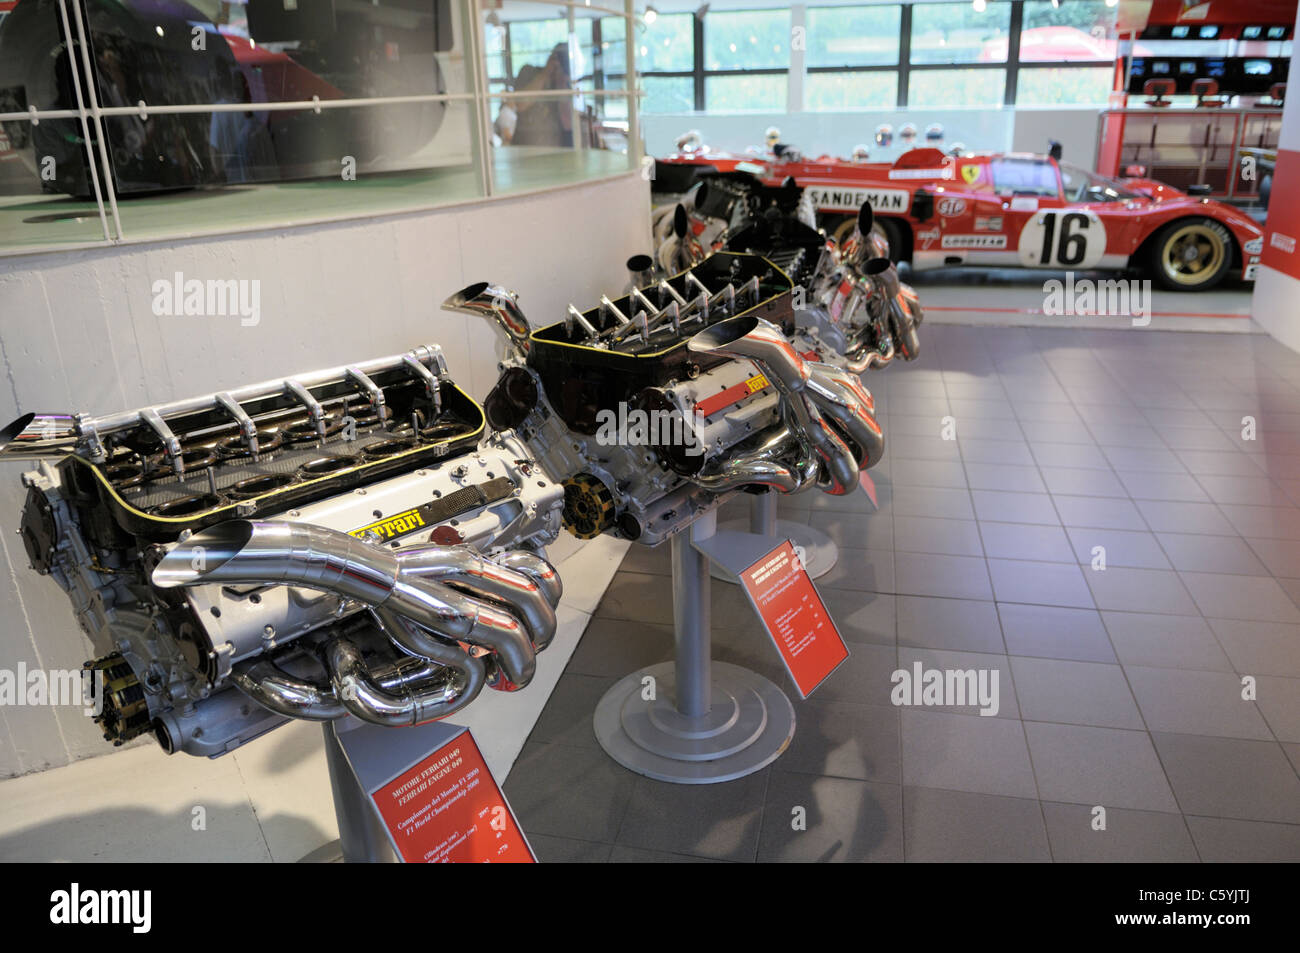 Ferrari engines, Galleria Ferrari, Maranello, Italy - Stock Image